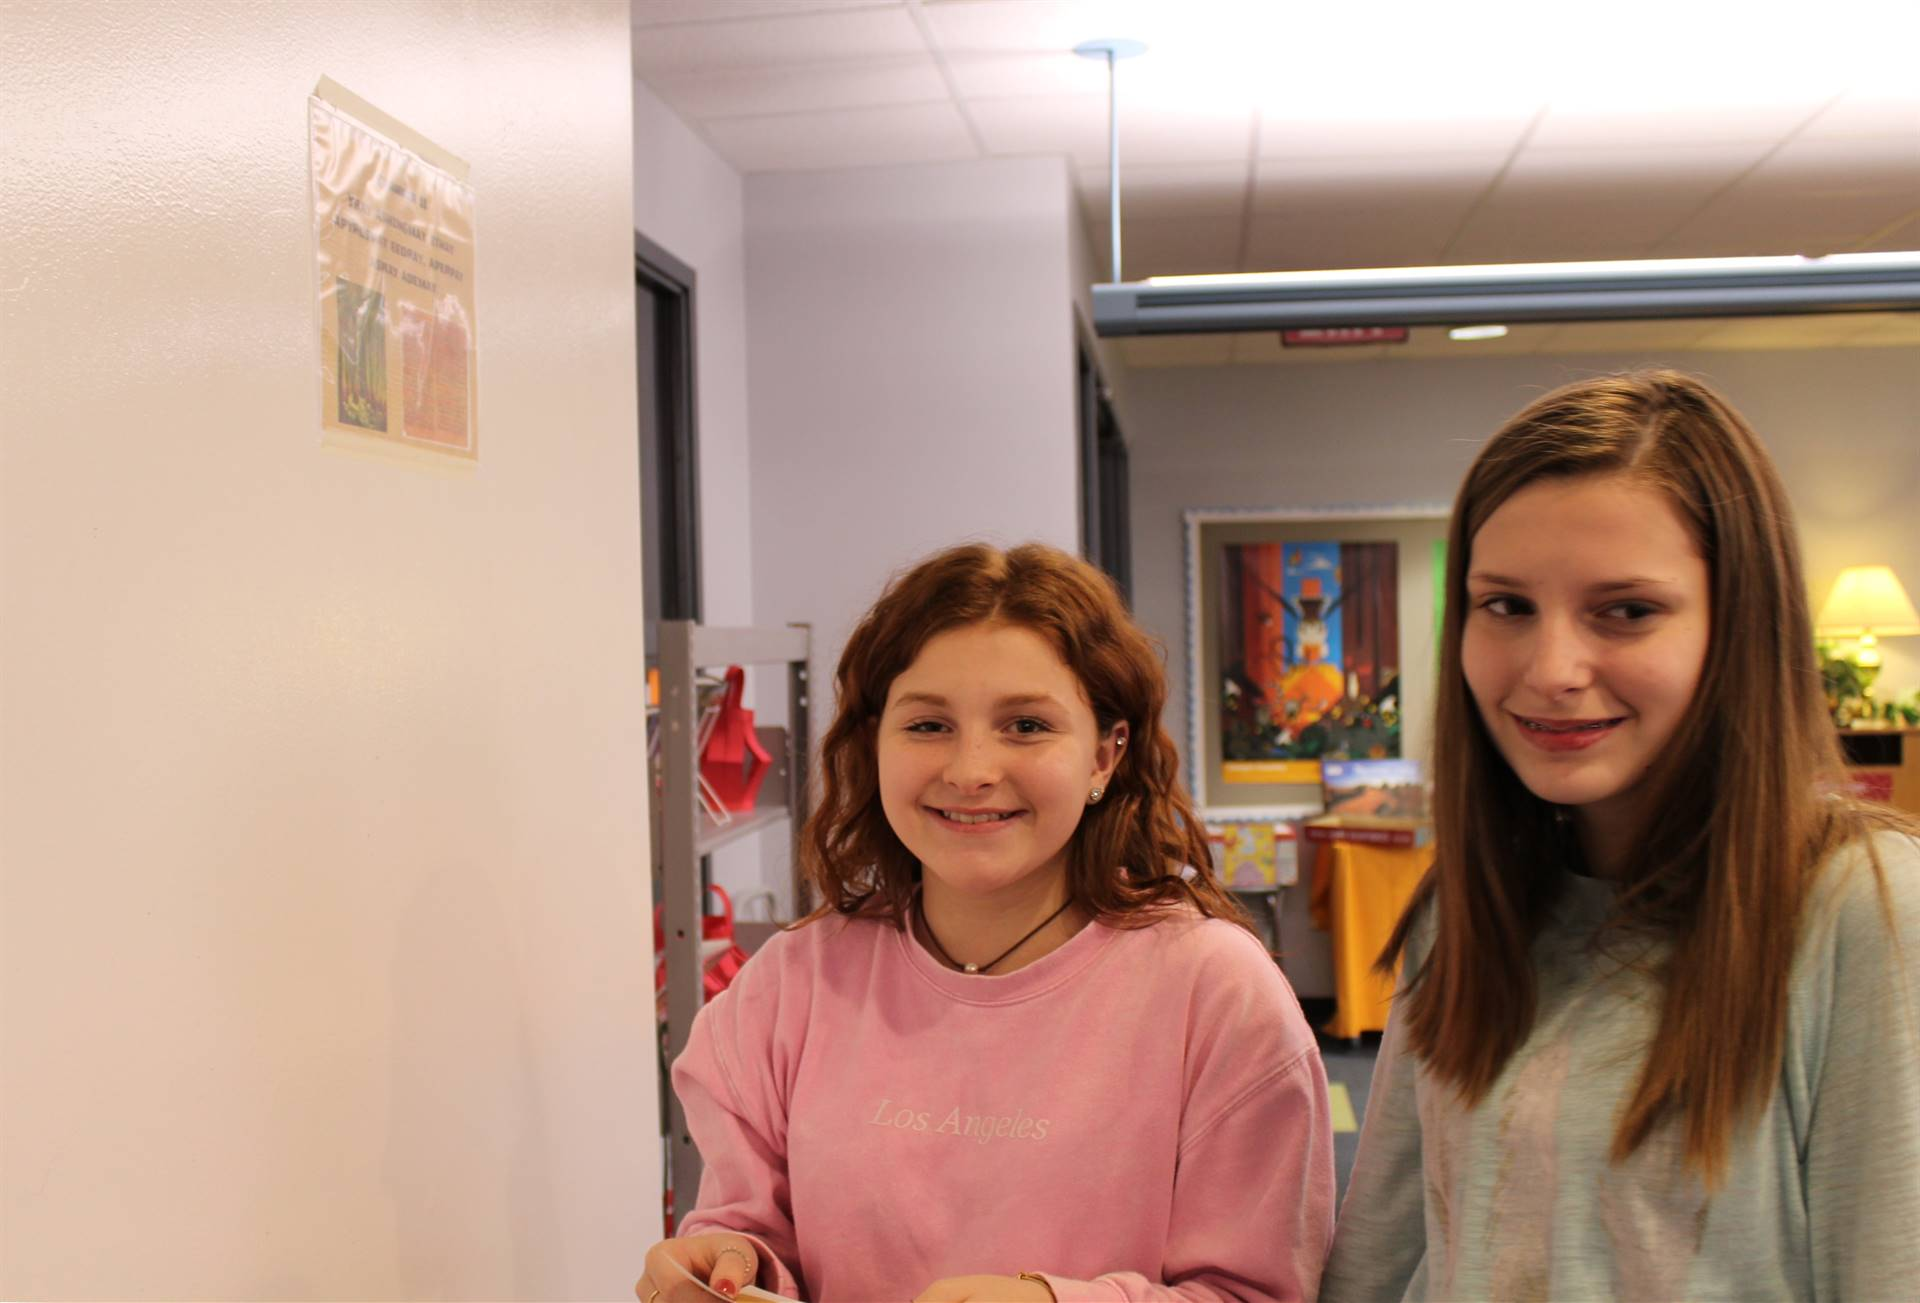 Students find the clues throughout the IMS Library